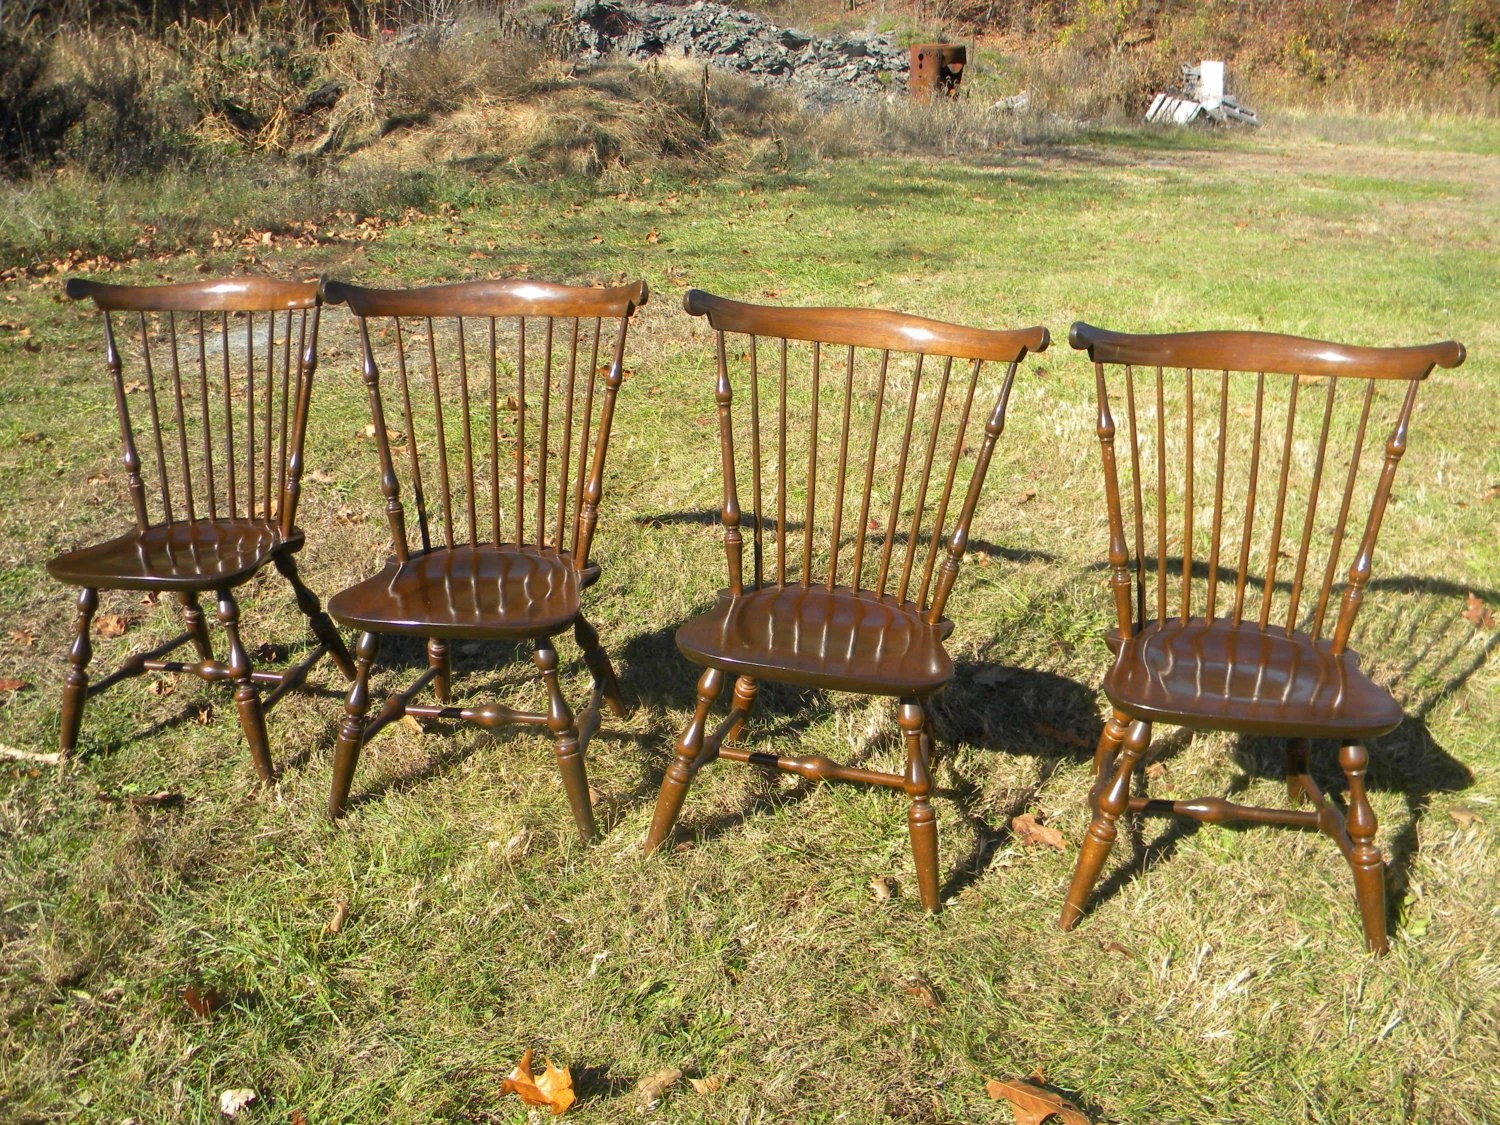 nichols and stone dining chairs best beach chair with canopy set of 4 clean vintage 1960s